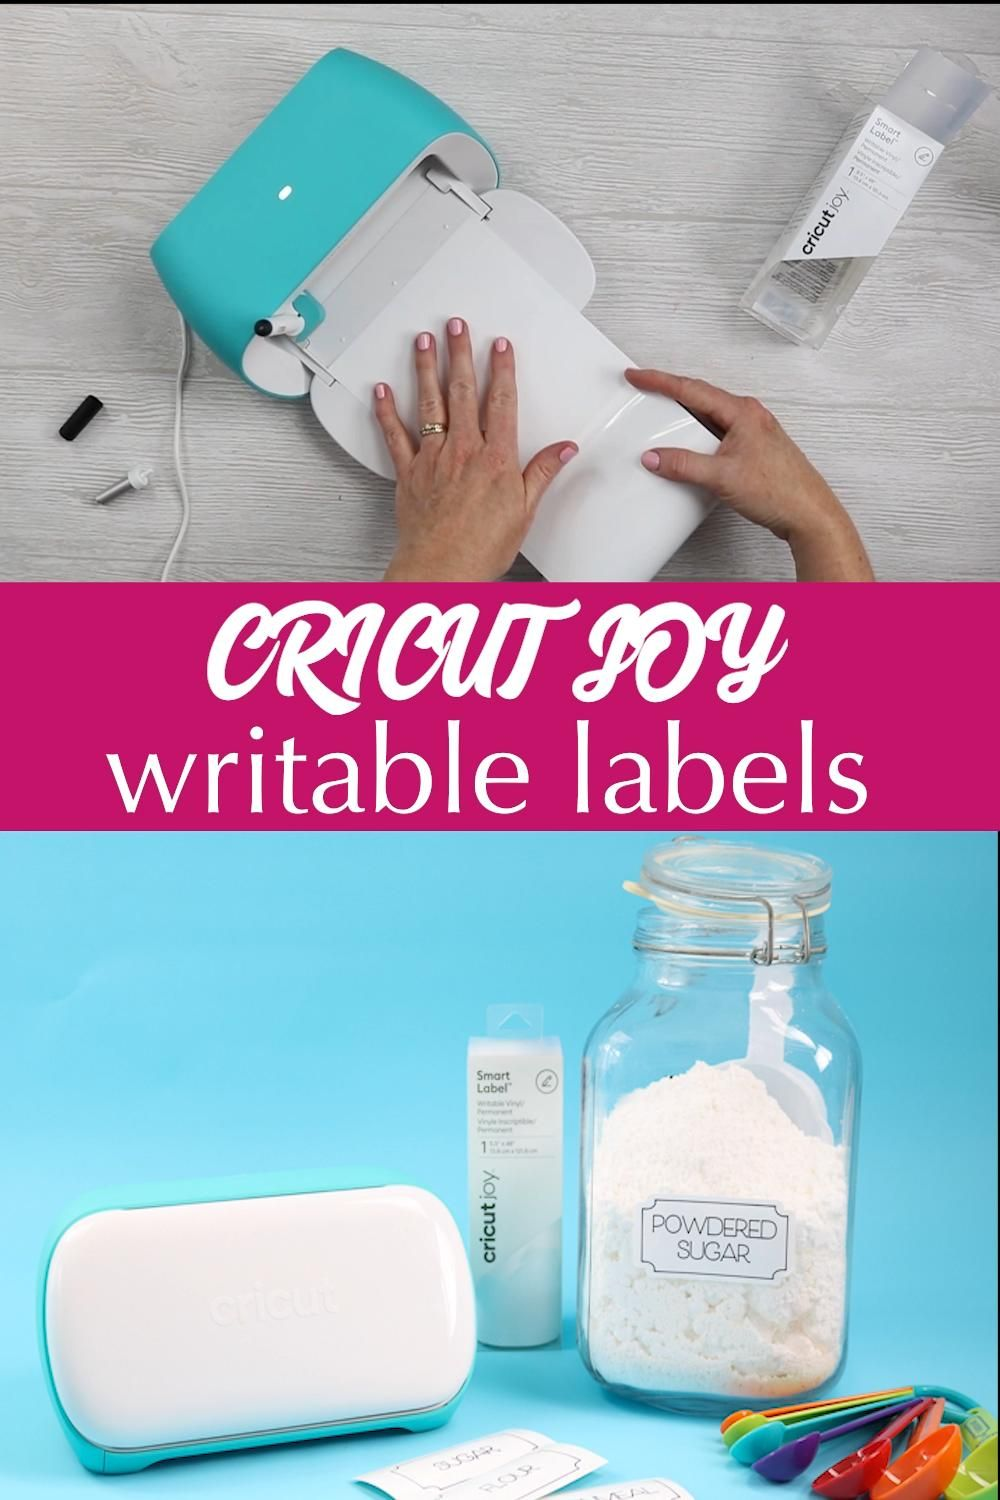 Learn how to use the writable labels on the Cricut Joy to organize your home! #labels #organization #organize #cricut #cricutcreated #cricutjoy